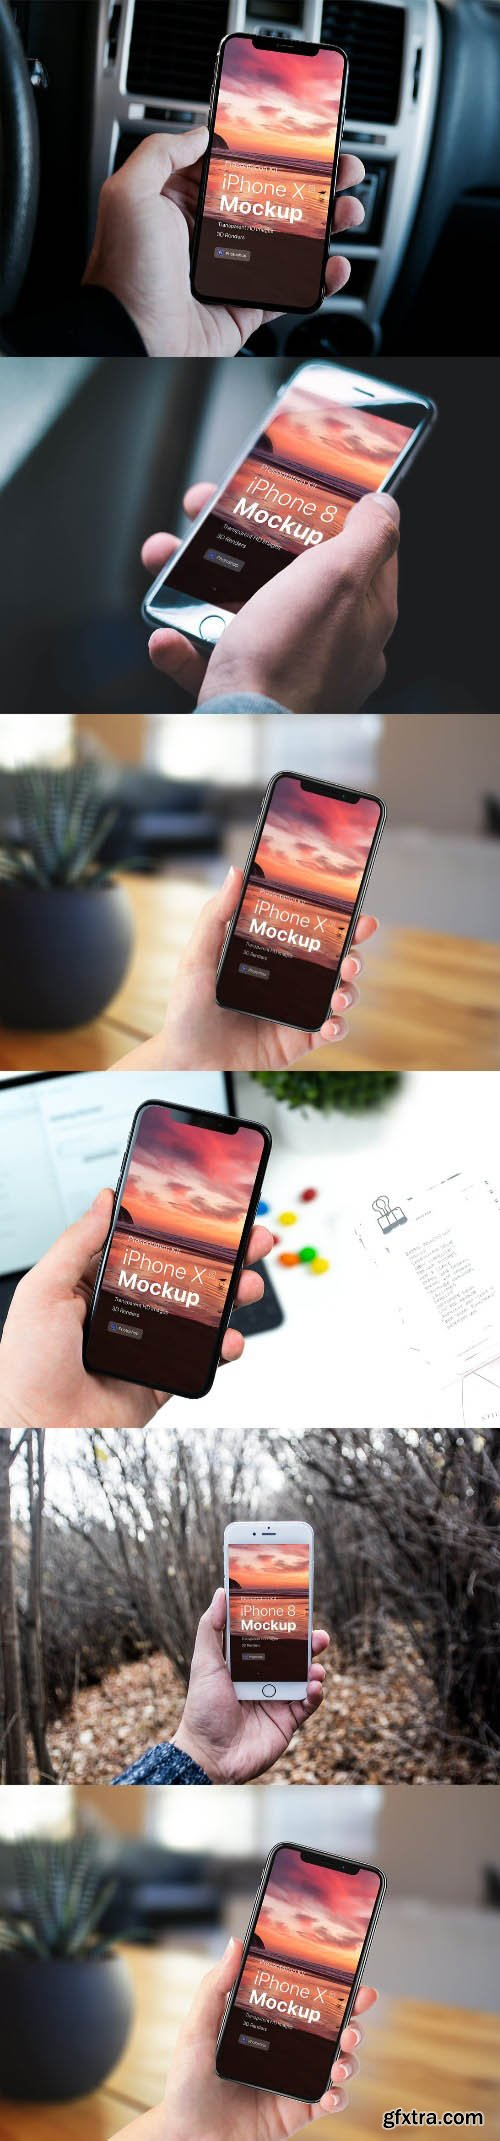 Presentation Kit - iPhone showcase Mockup 4